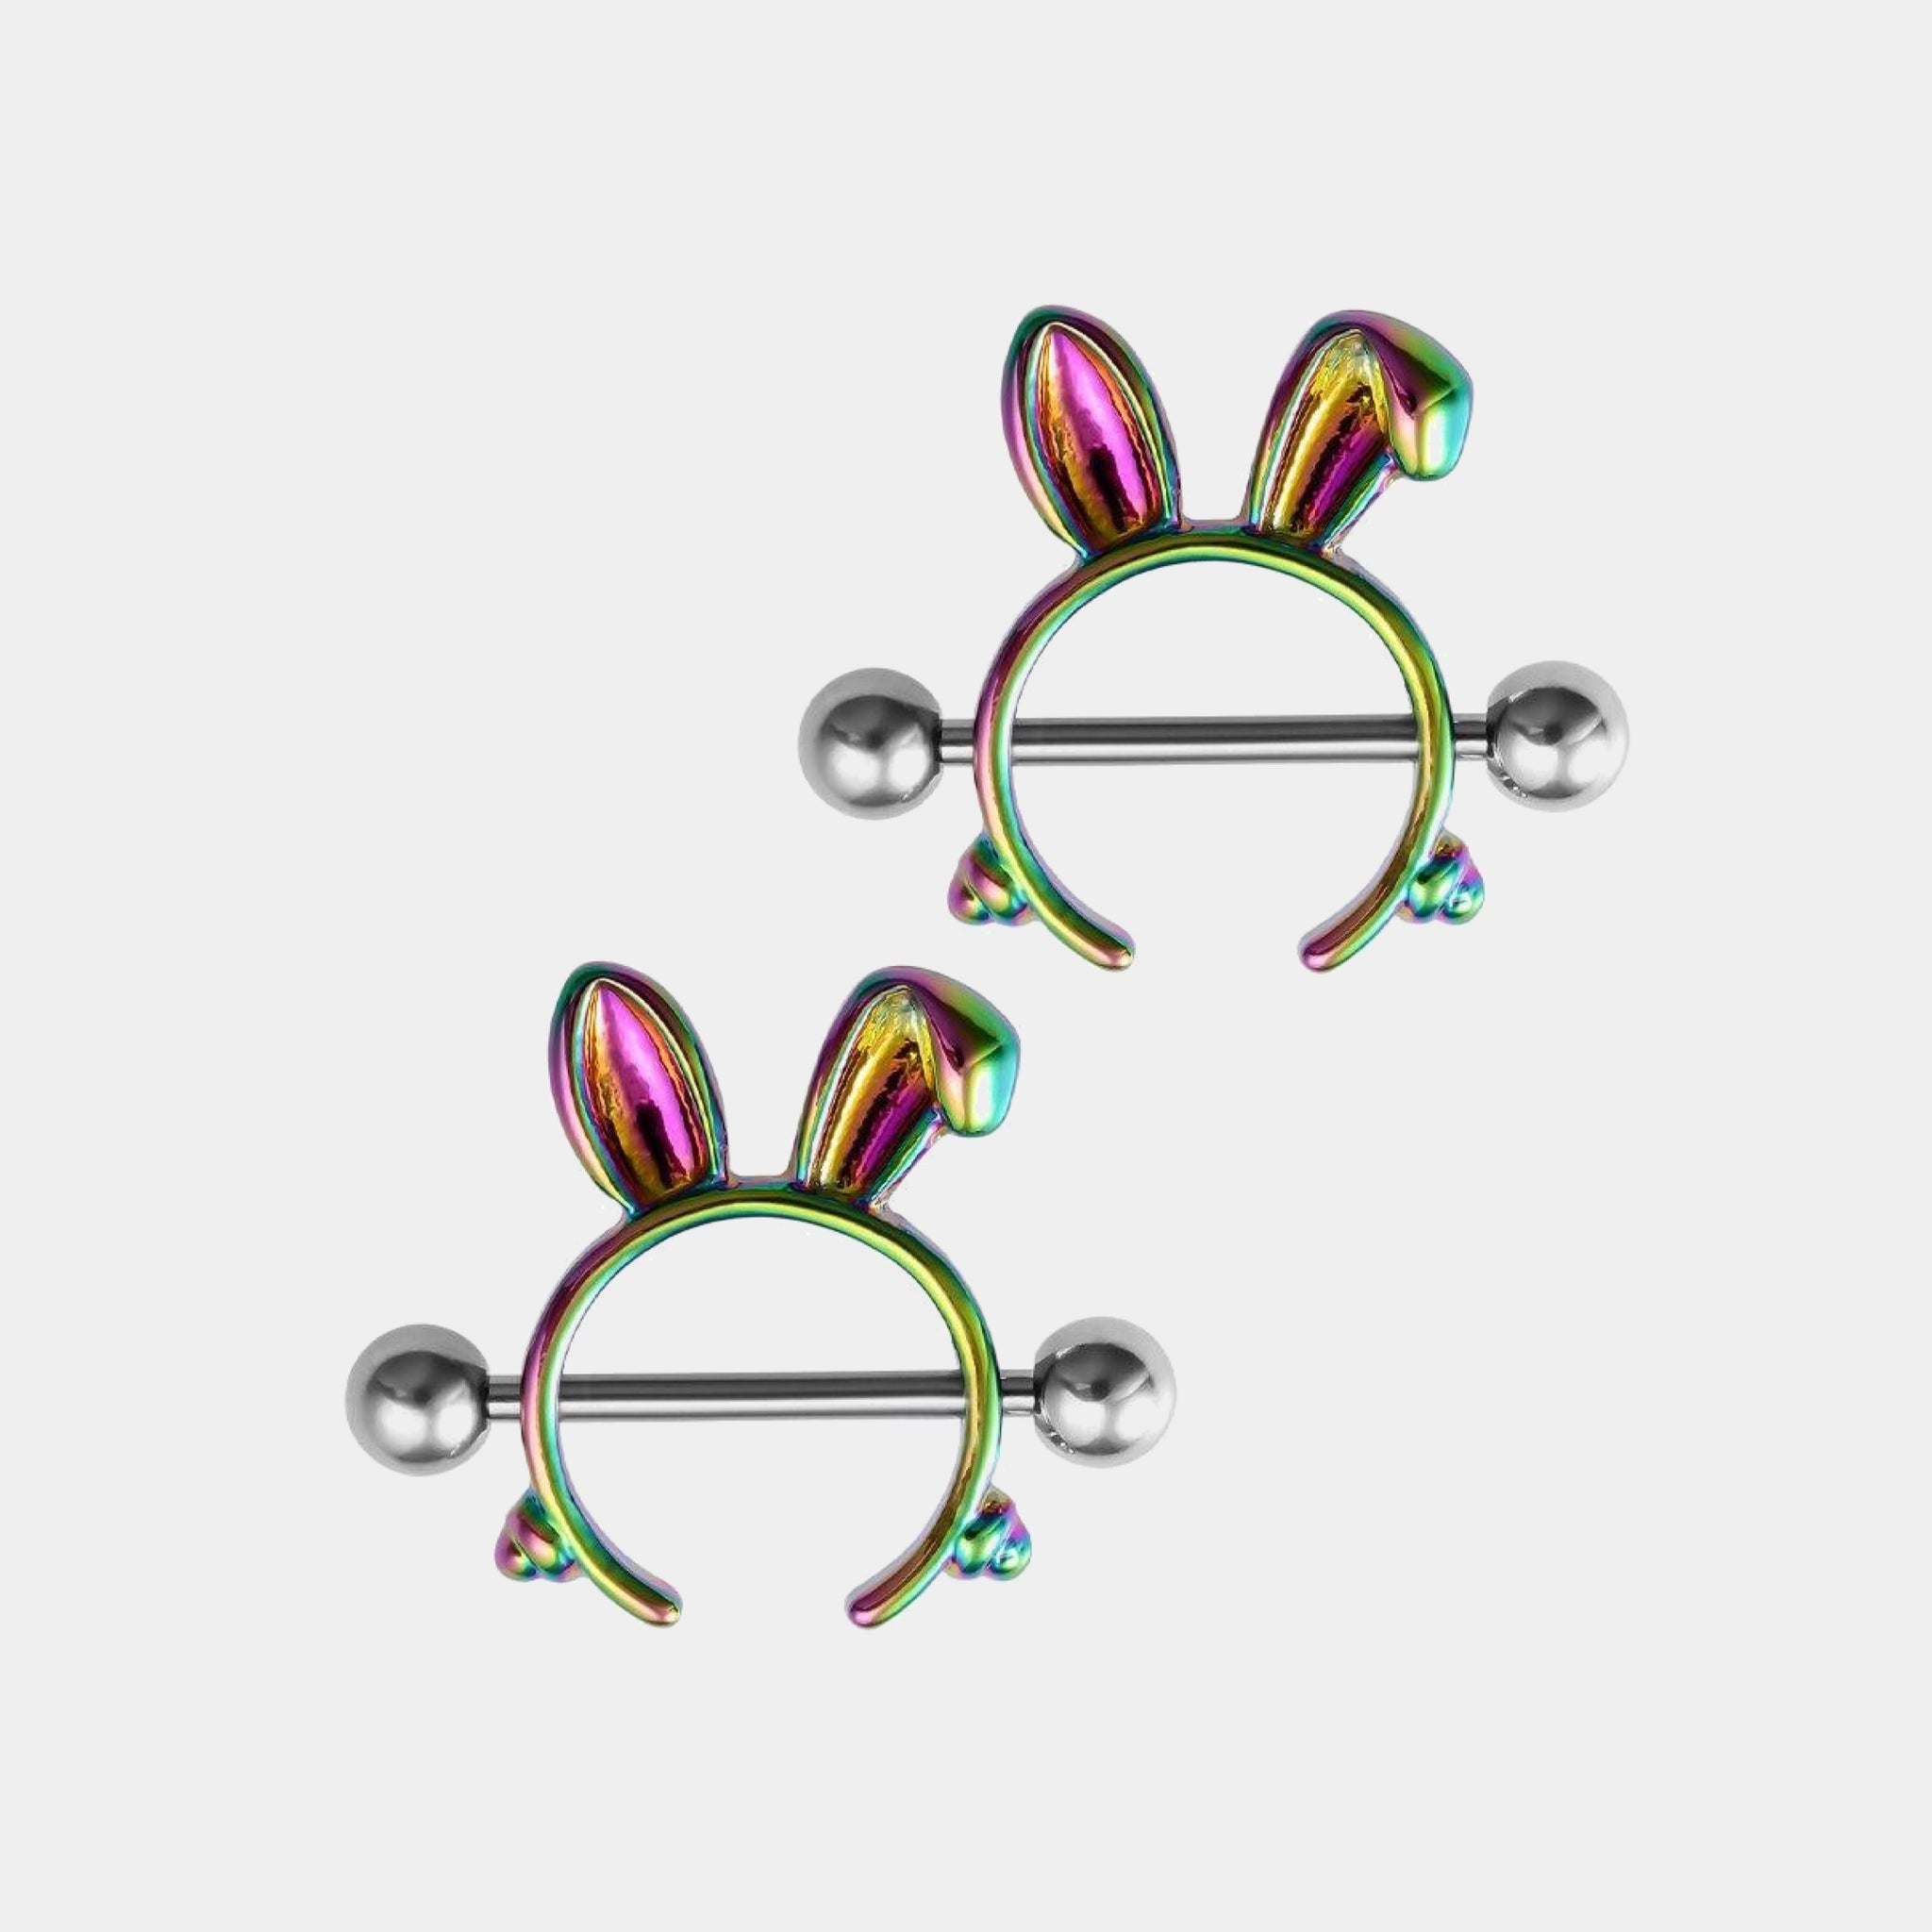 1 Pair Rabbit Nipple Rings 316L Stainless Steel Nipple Cover Punk Rainbow Color Body Jewelry Gift